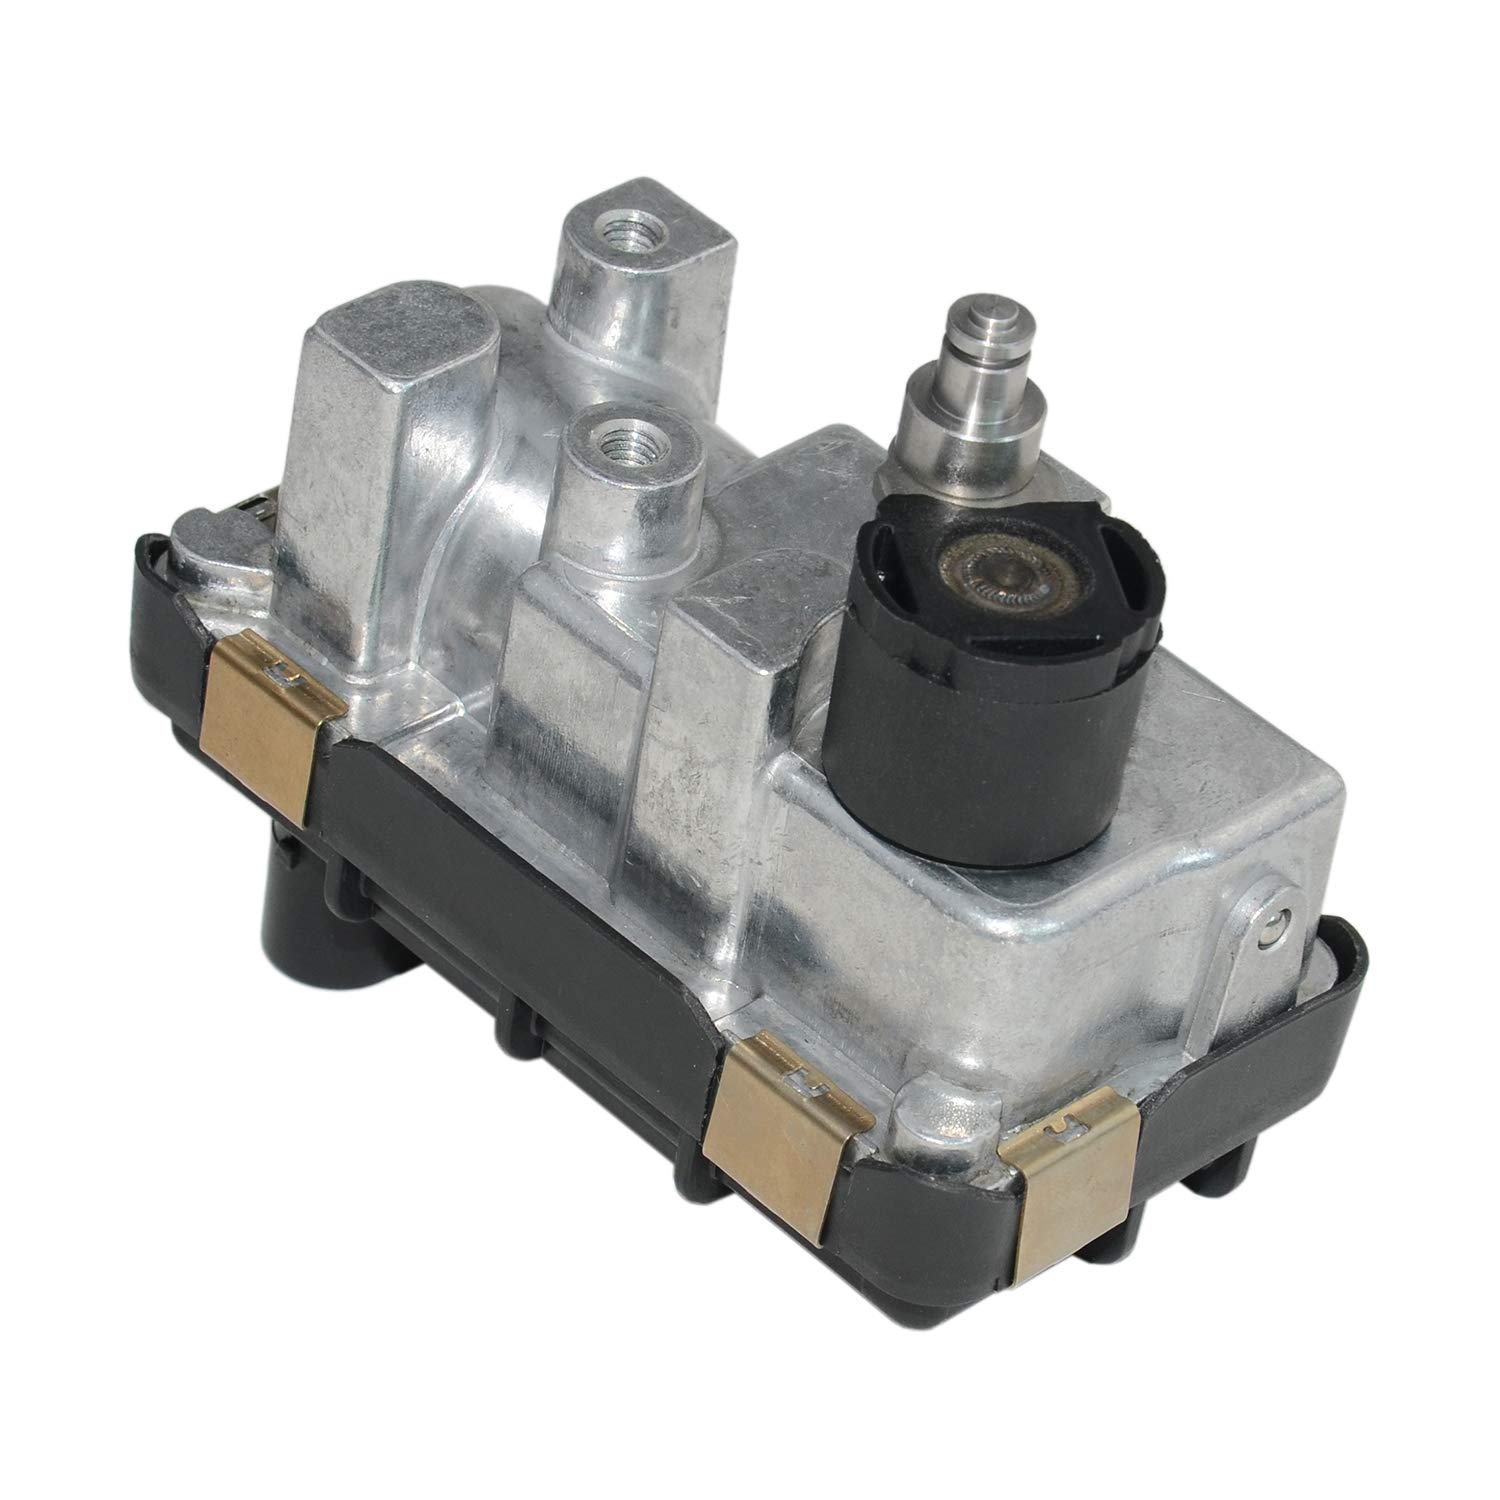 Amazon.com: 6NW009543 763797 Turbo Electric Actuator Compatible For Sprinter Van Grand Cherokee 3.0L: Automotive